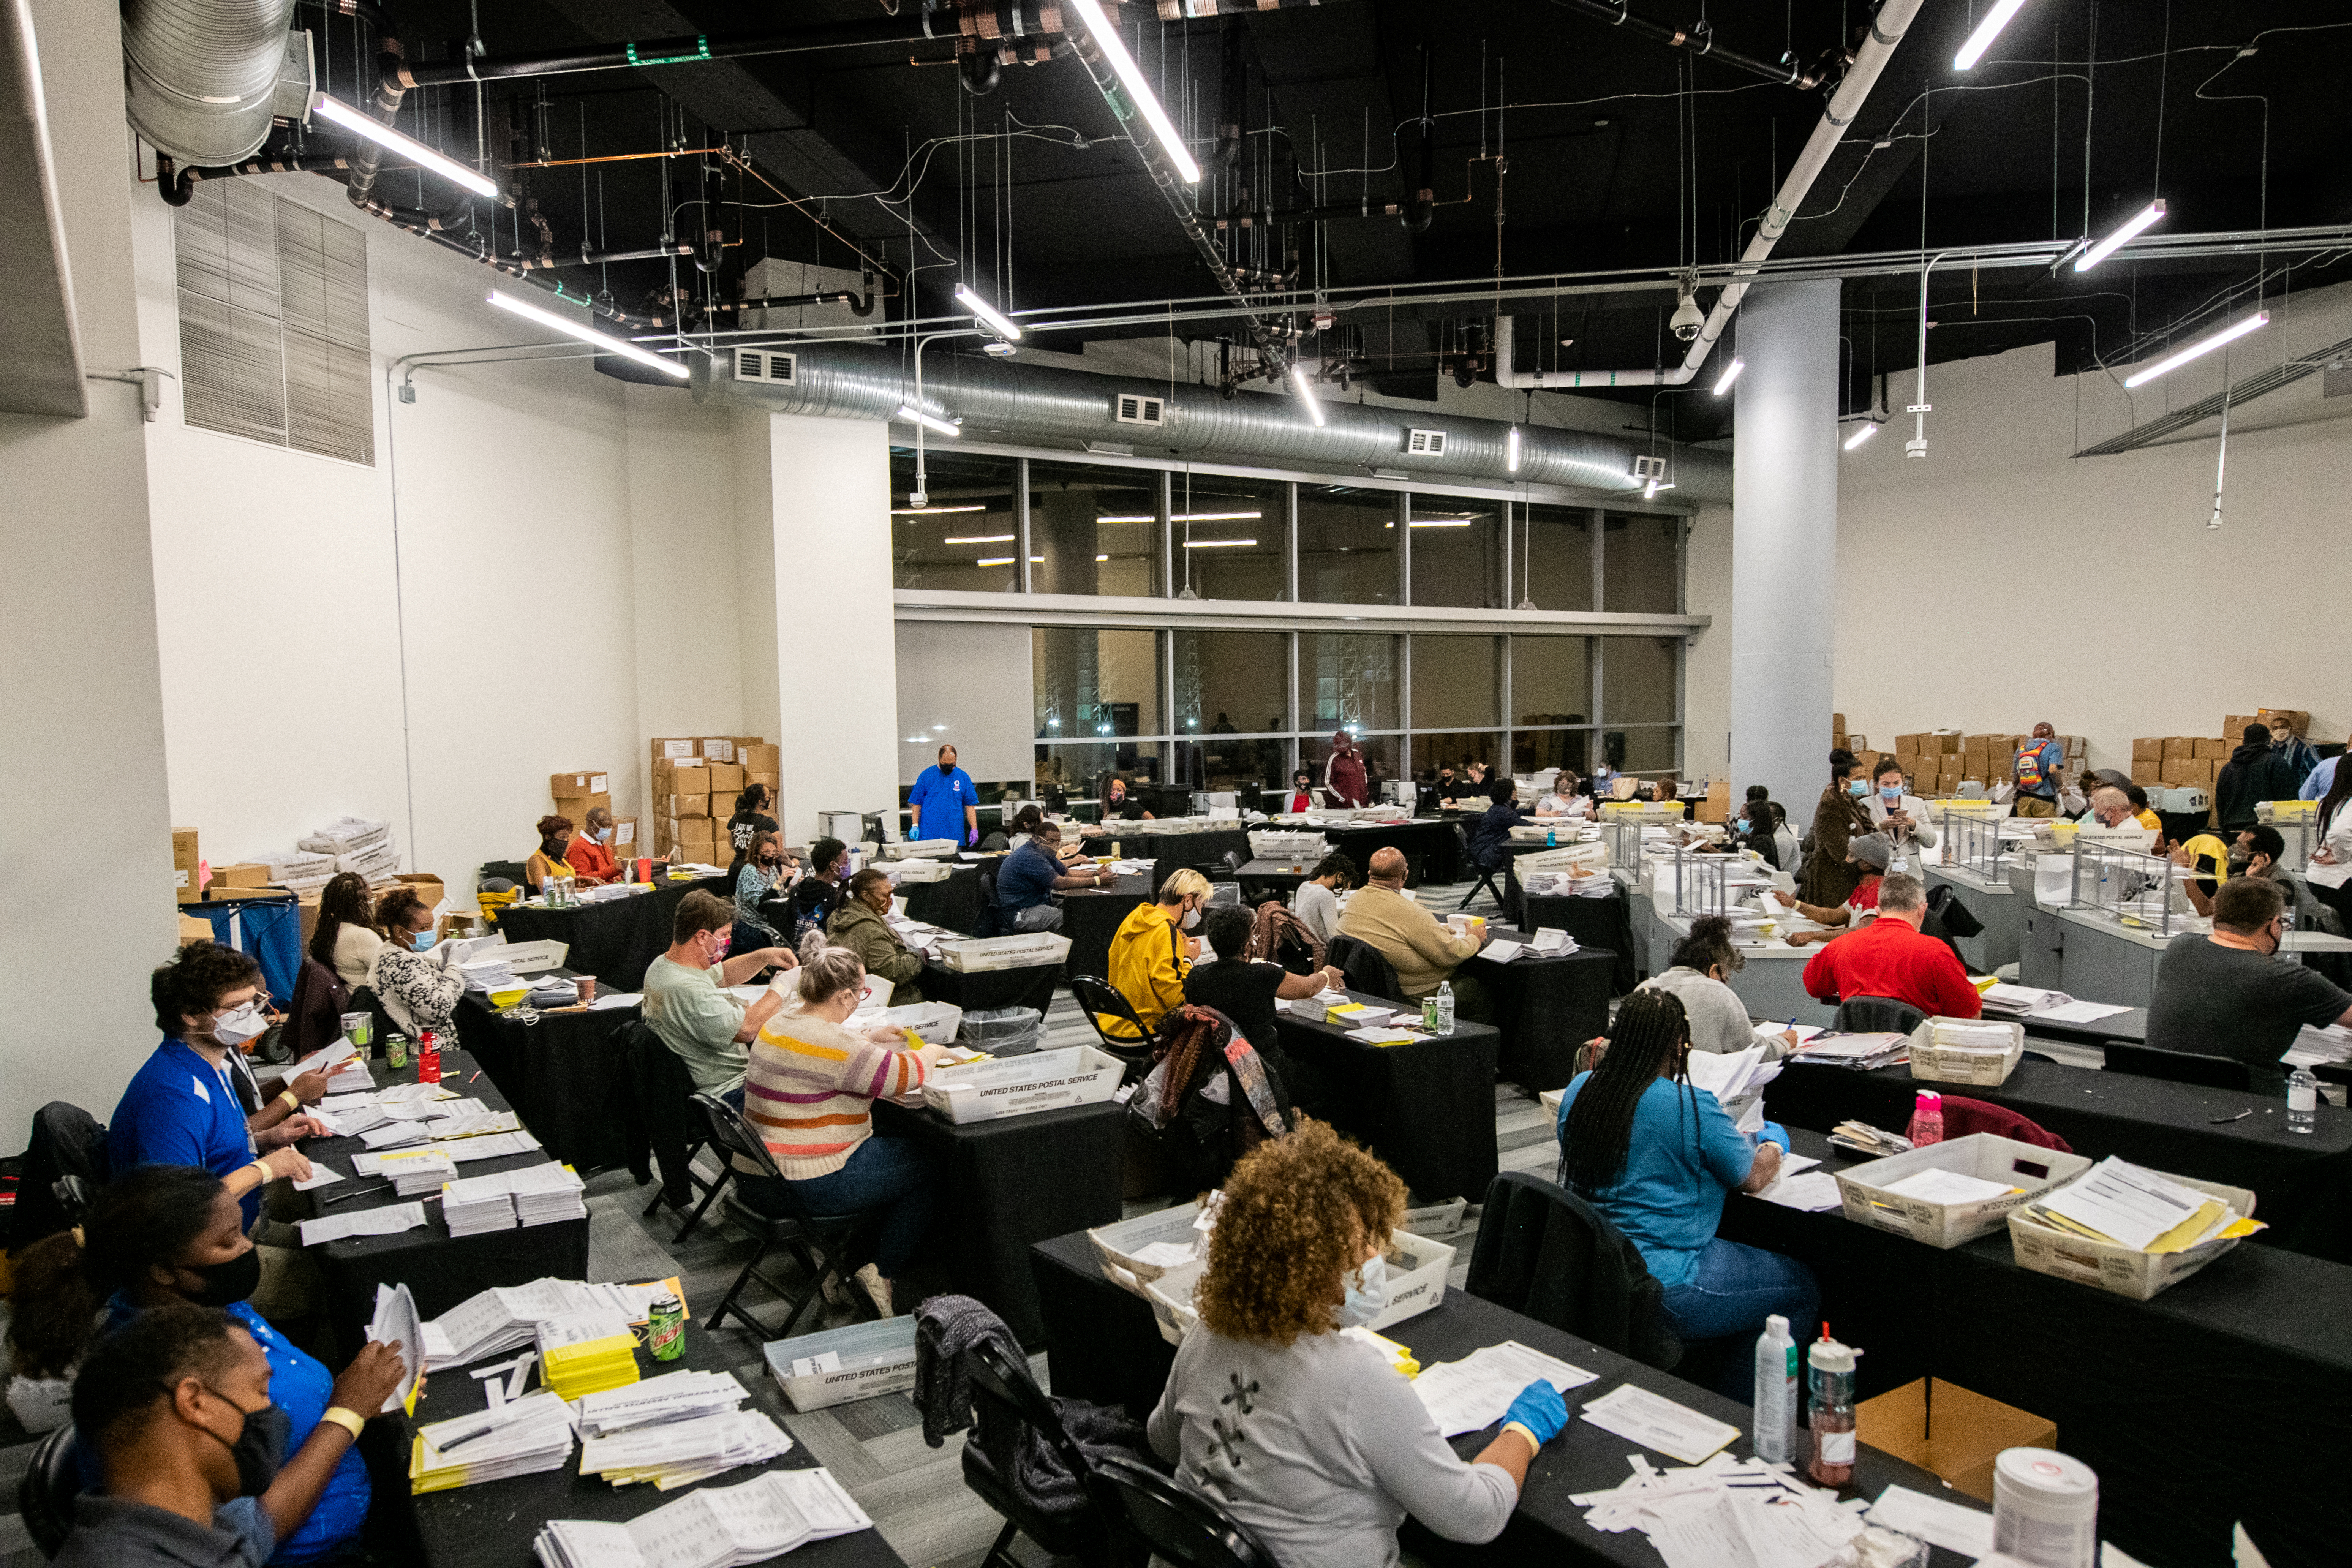 Employees of the Fulton County Board of Registration and Elections process ballots in Atlanta, Georgia U.S. REUTERS/Brandon Bell